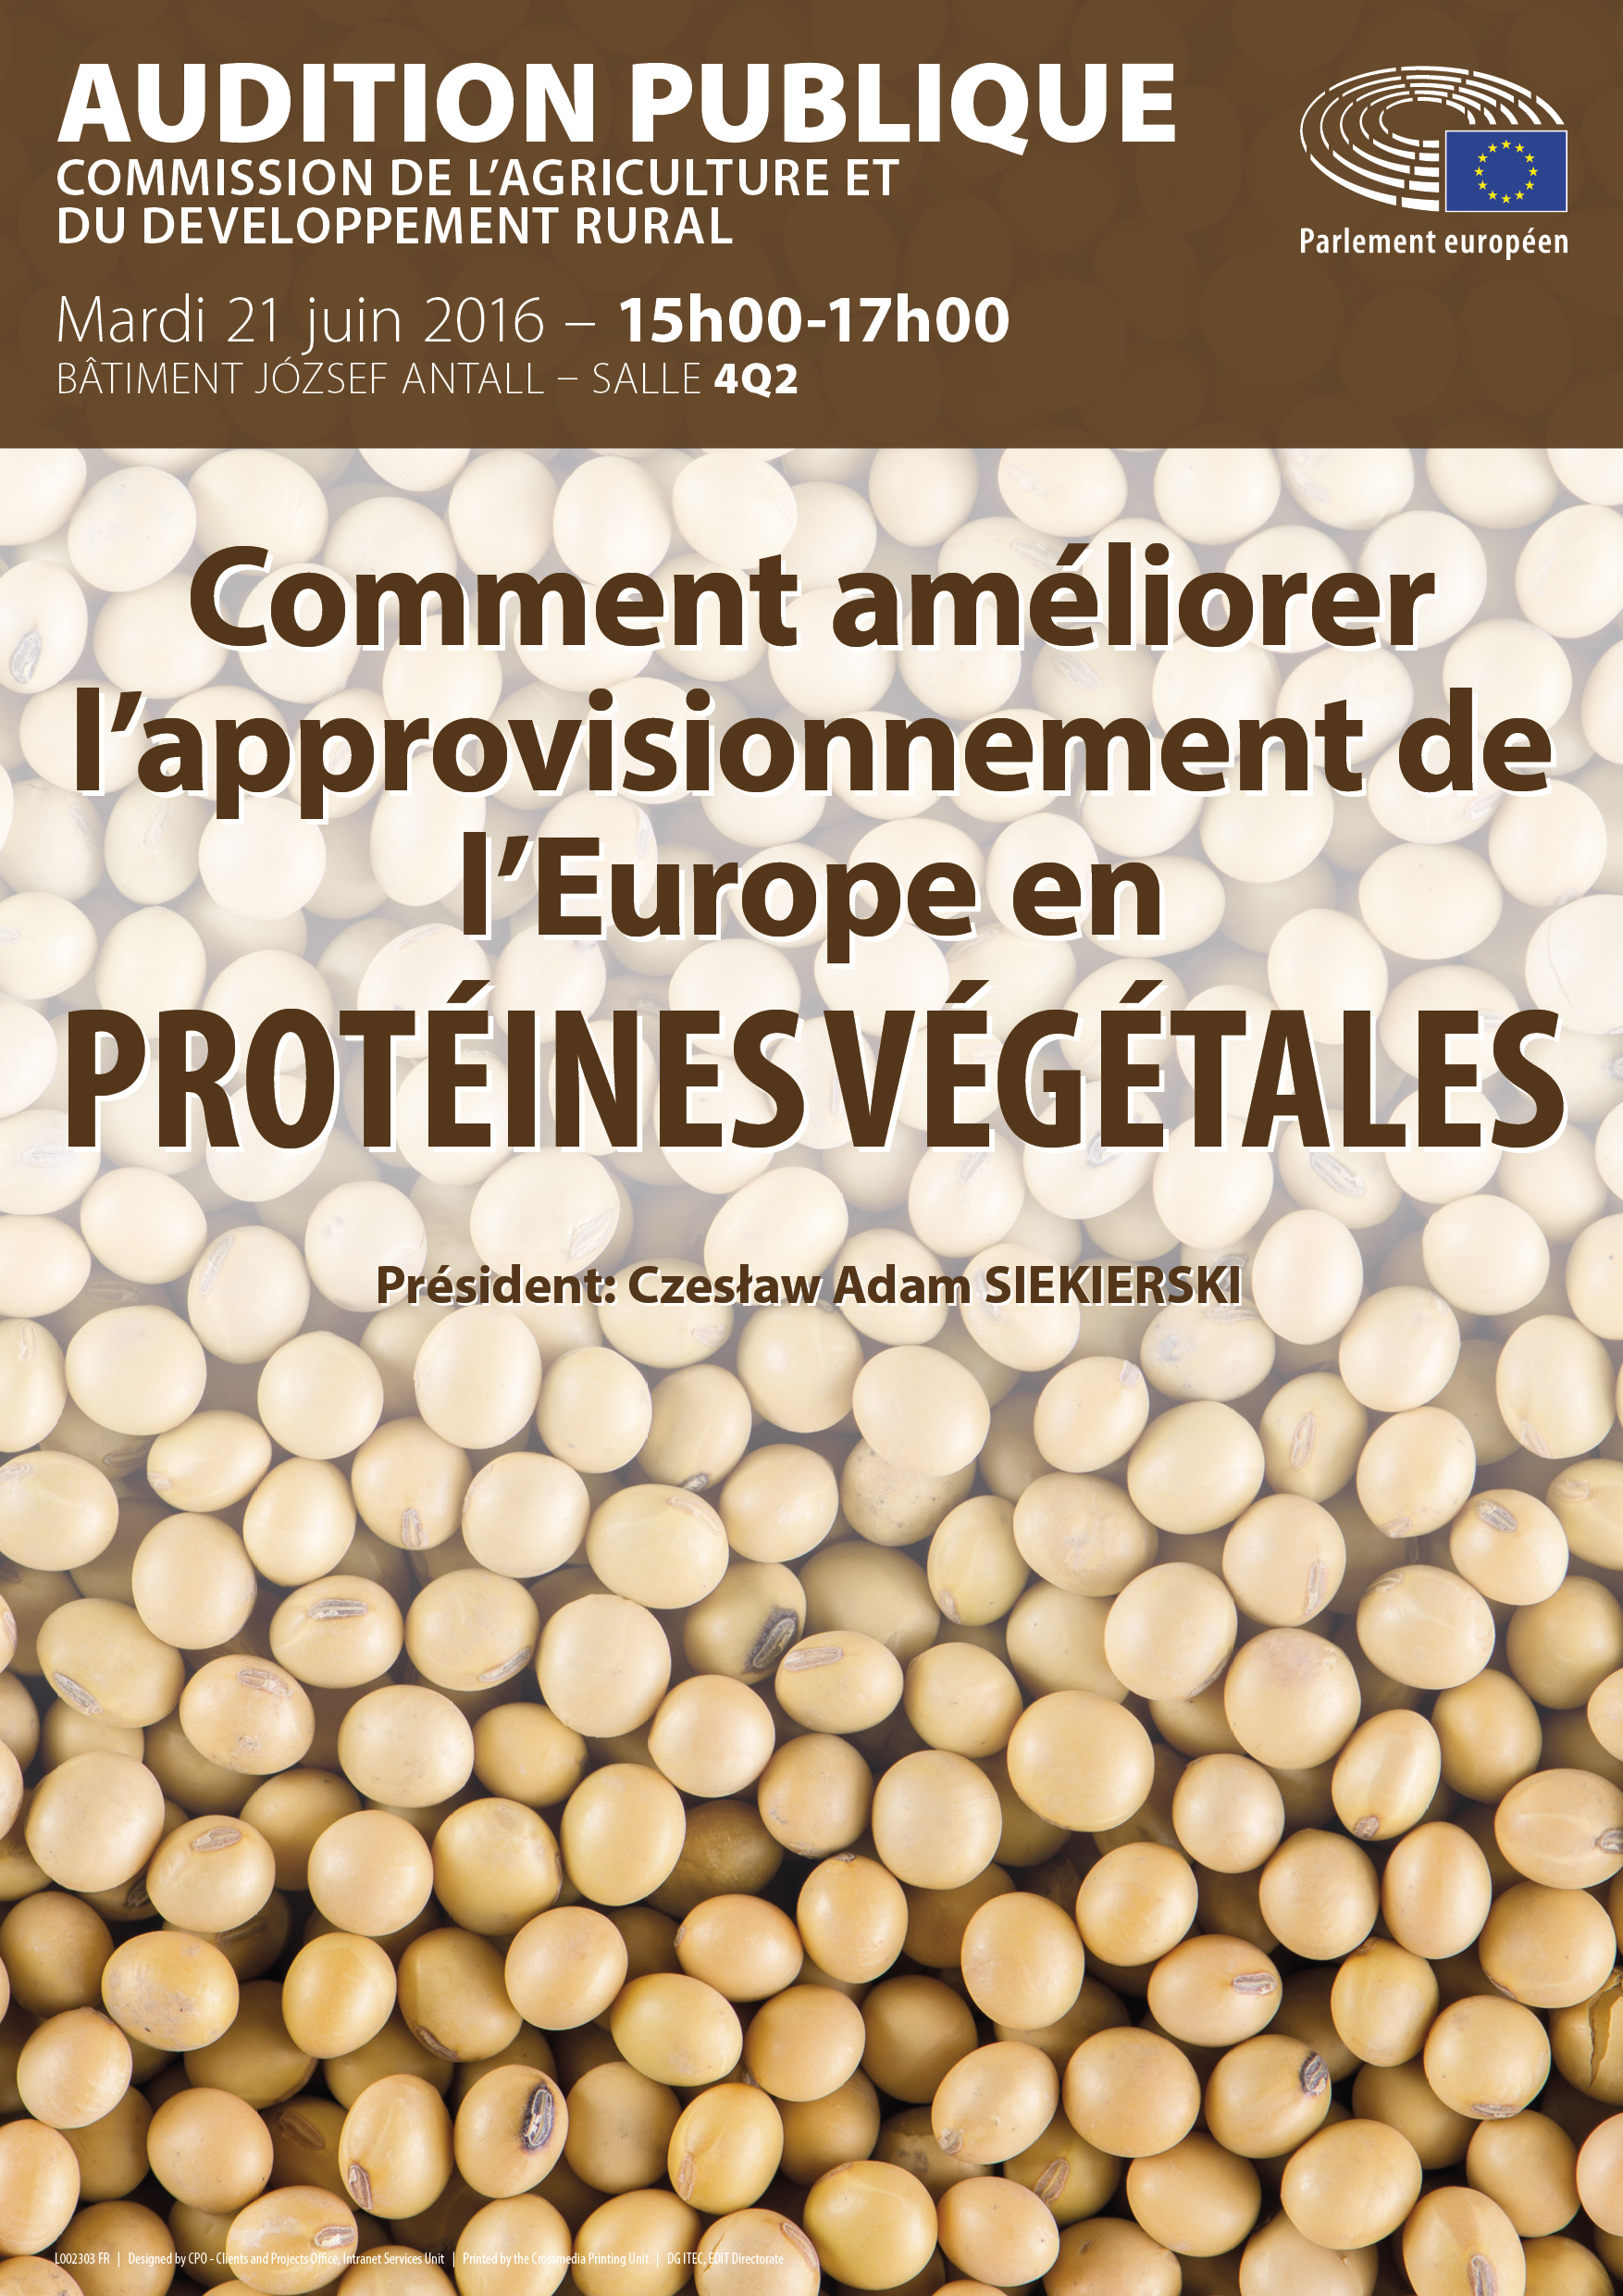 Proteines vegetales audition